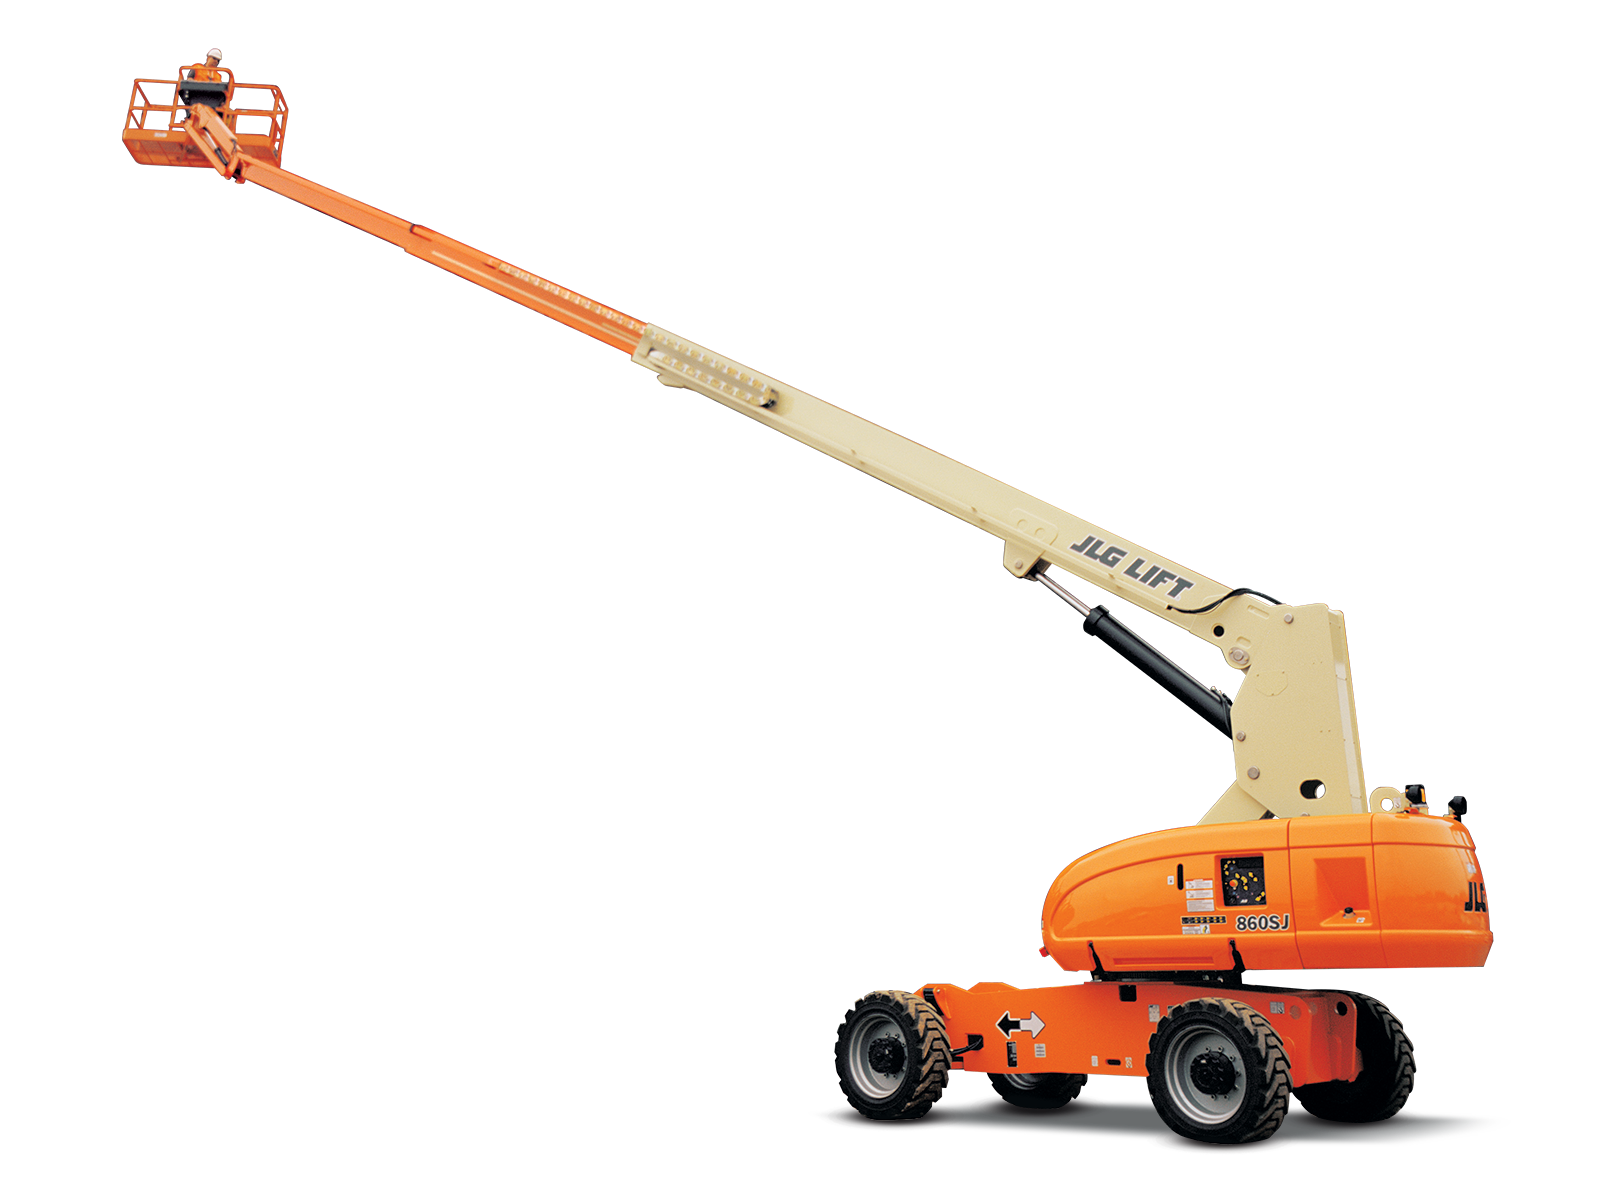 JLG 860SJ | Telescopic Boom Lift on Hire |  WESTERN INDIA SKY LIFTER